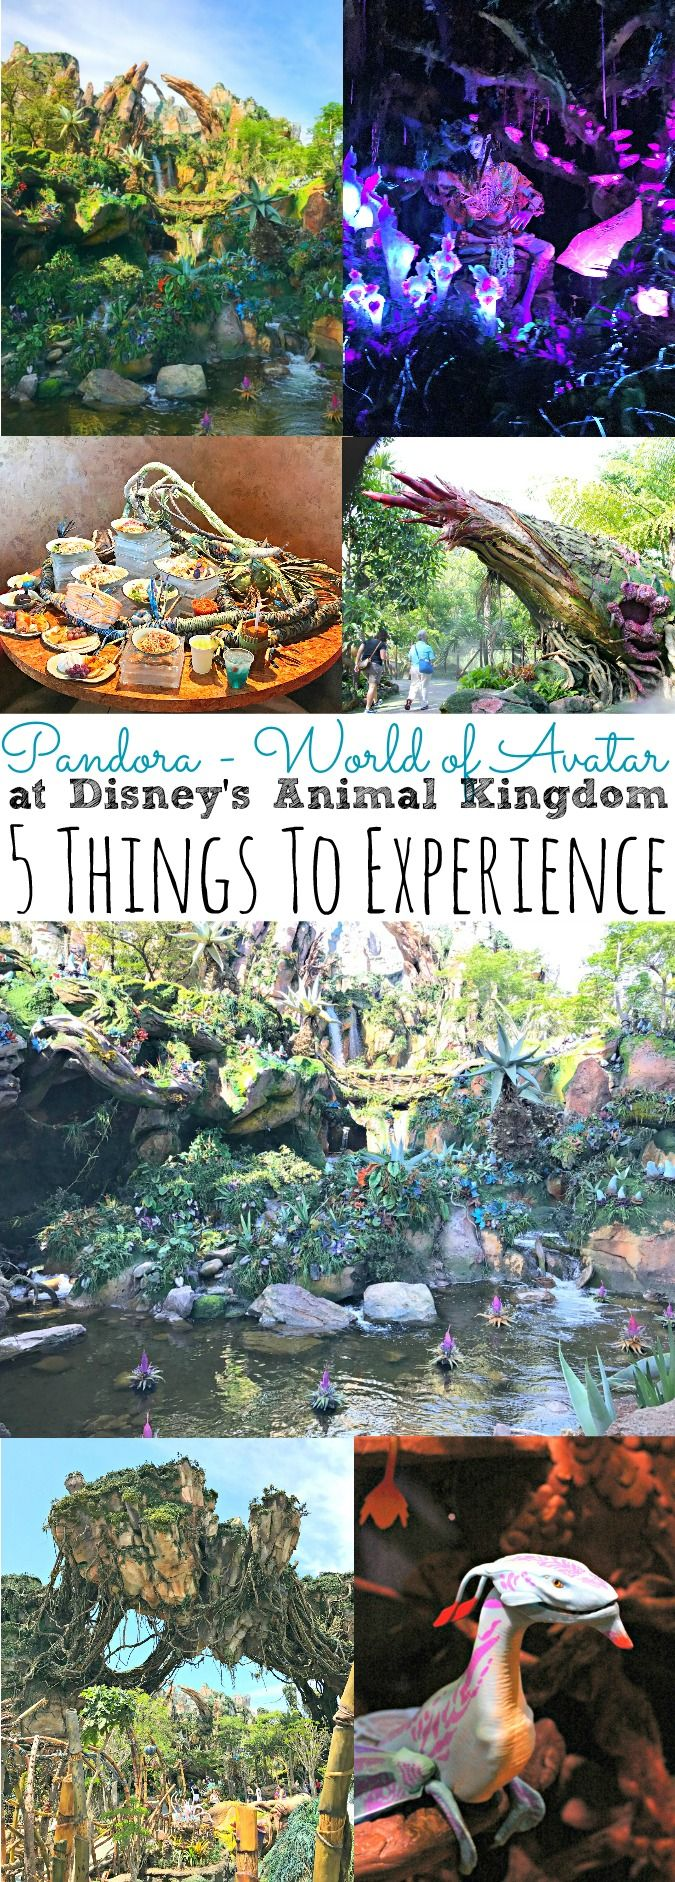 Pandora World of Avatar at Disney's Animal Kingdom | 5 Things To Experience - abccreativelearning.com